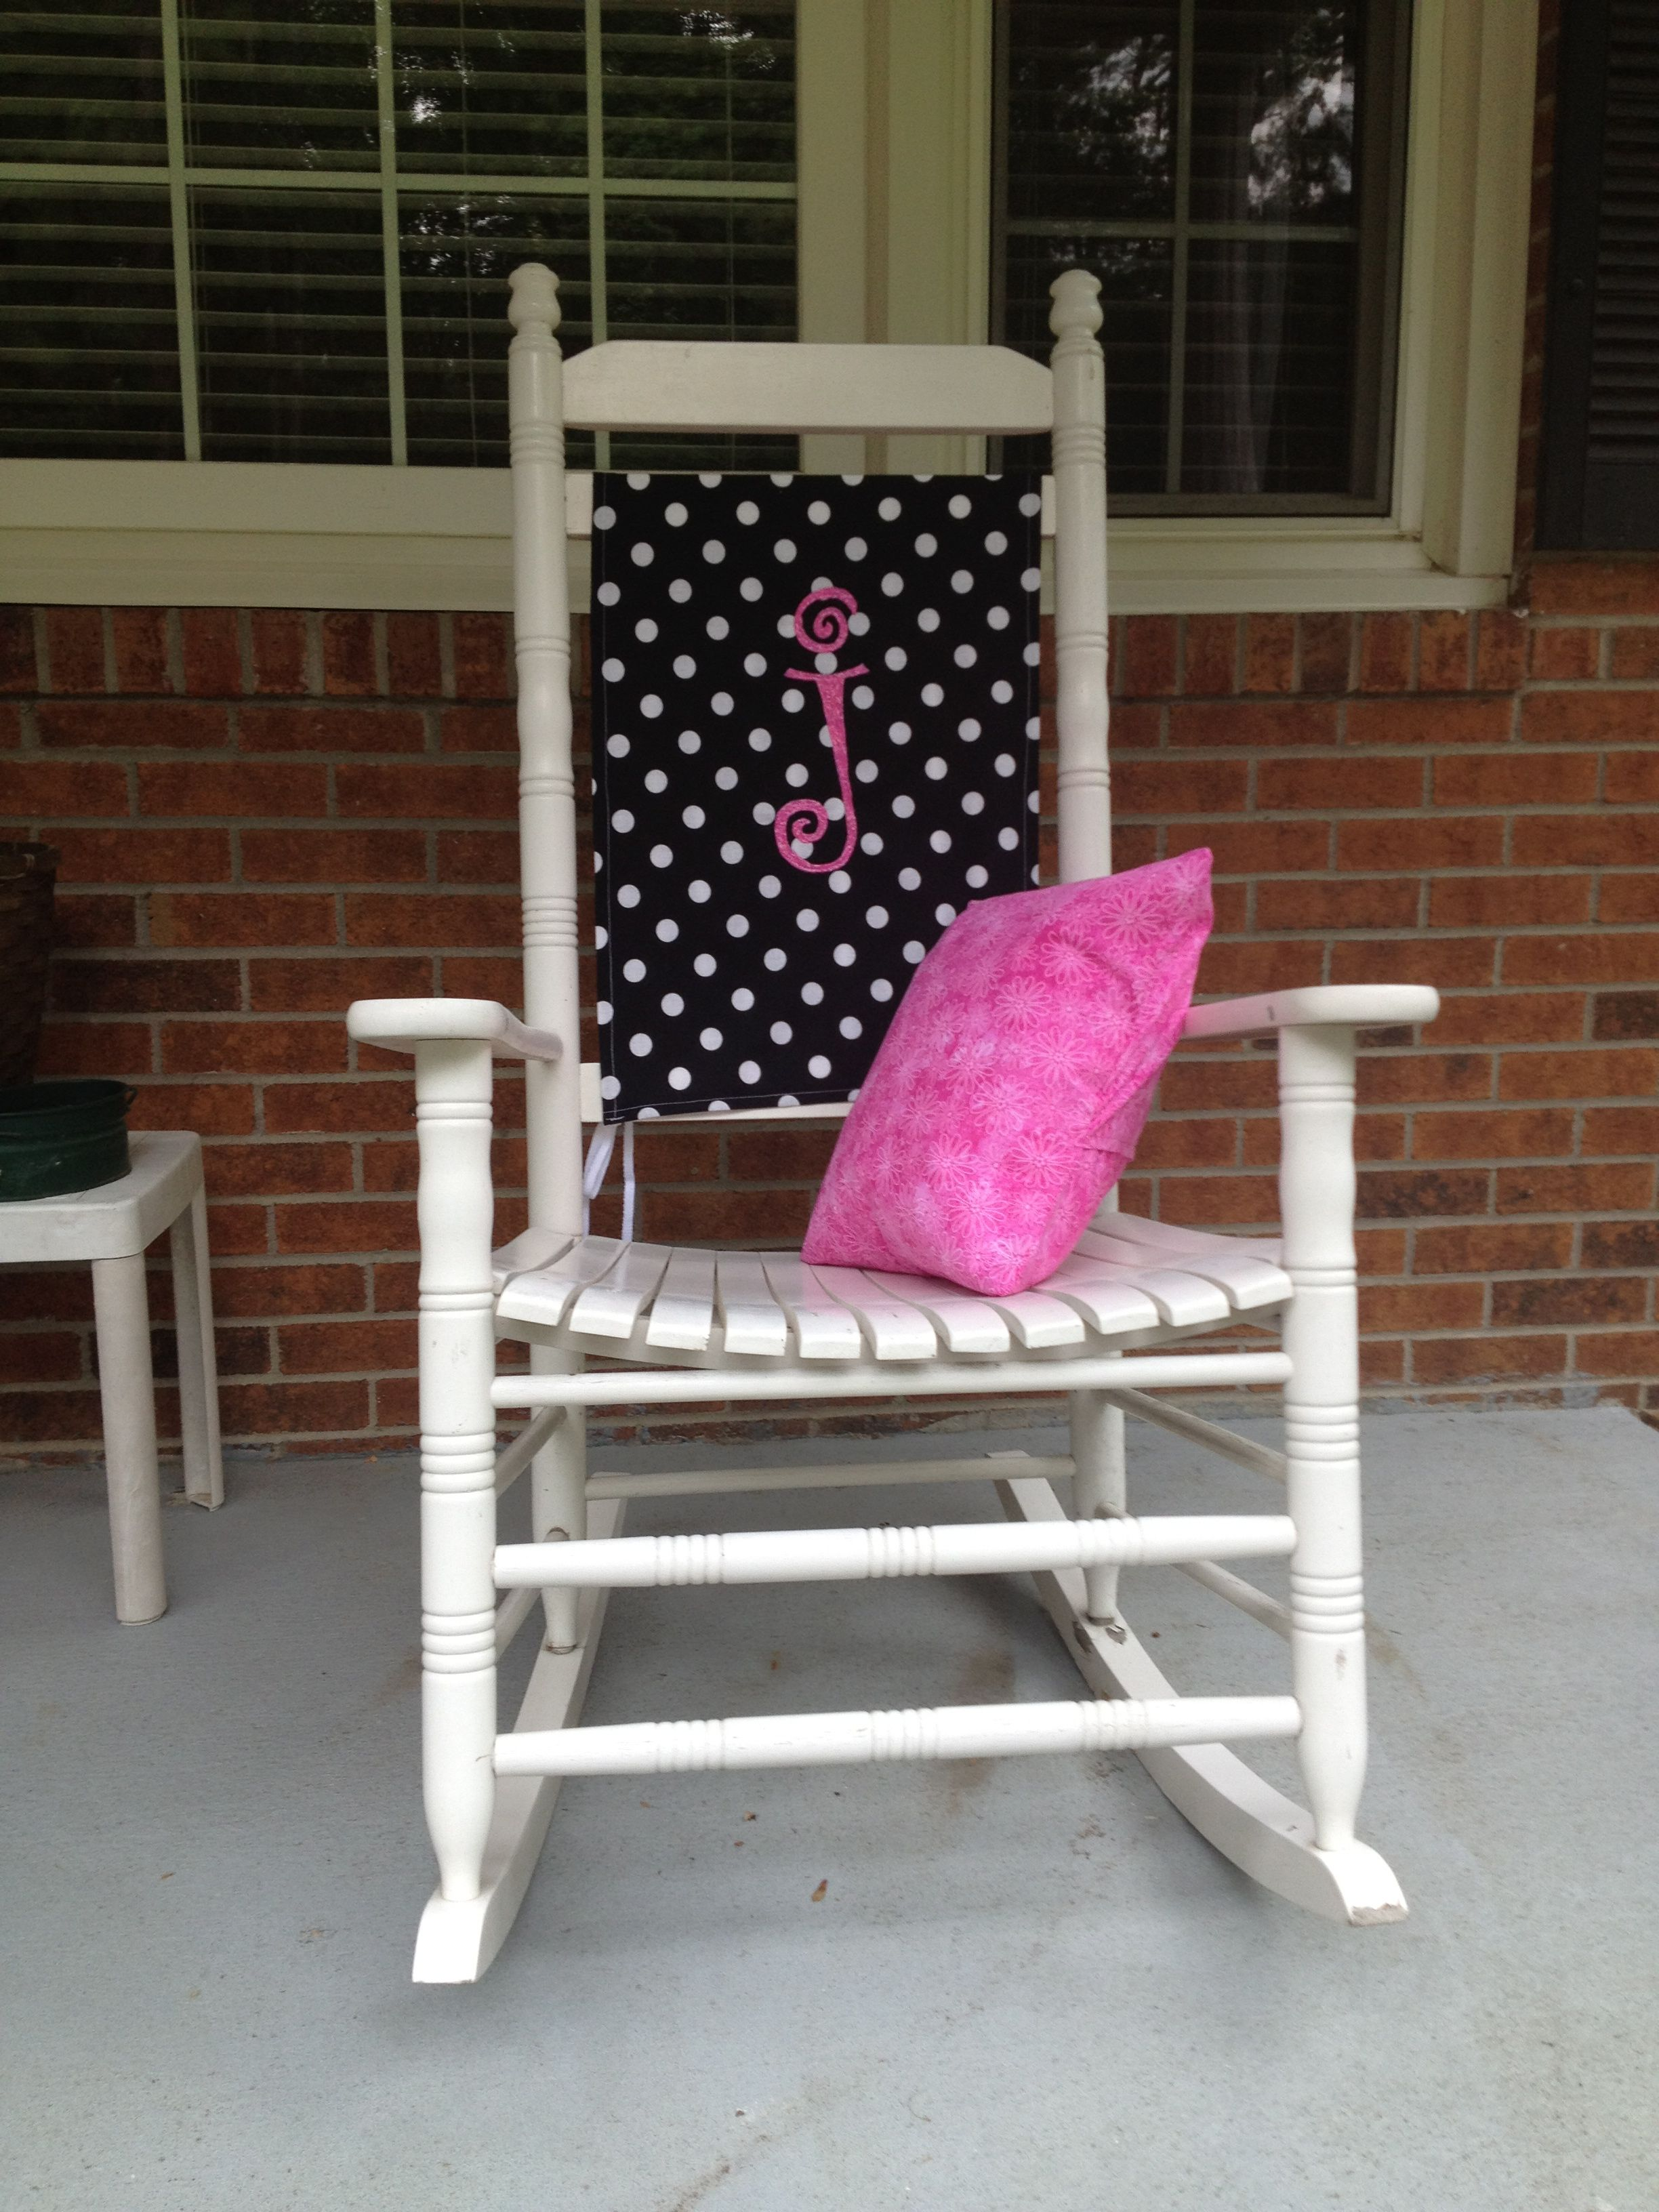 Personalized rocking chair cover and pillow. MY OWN